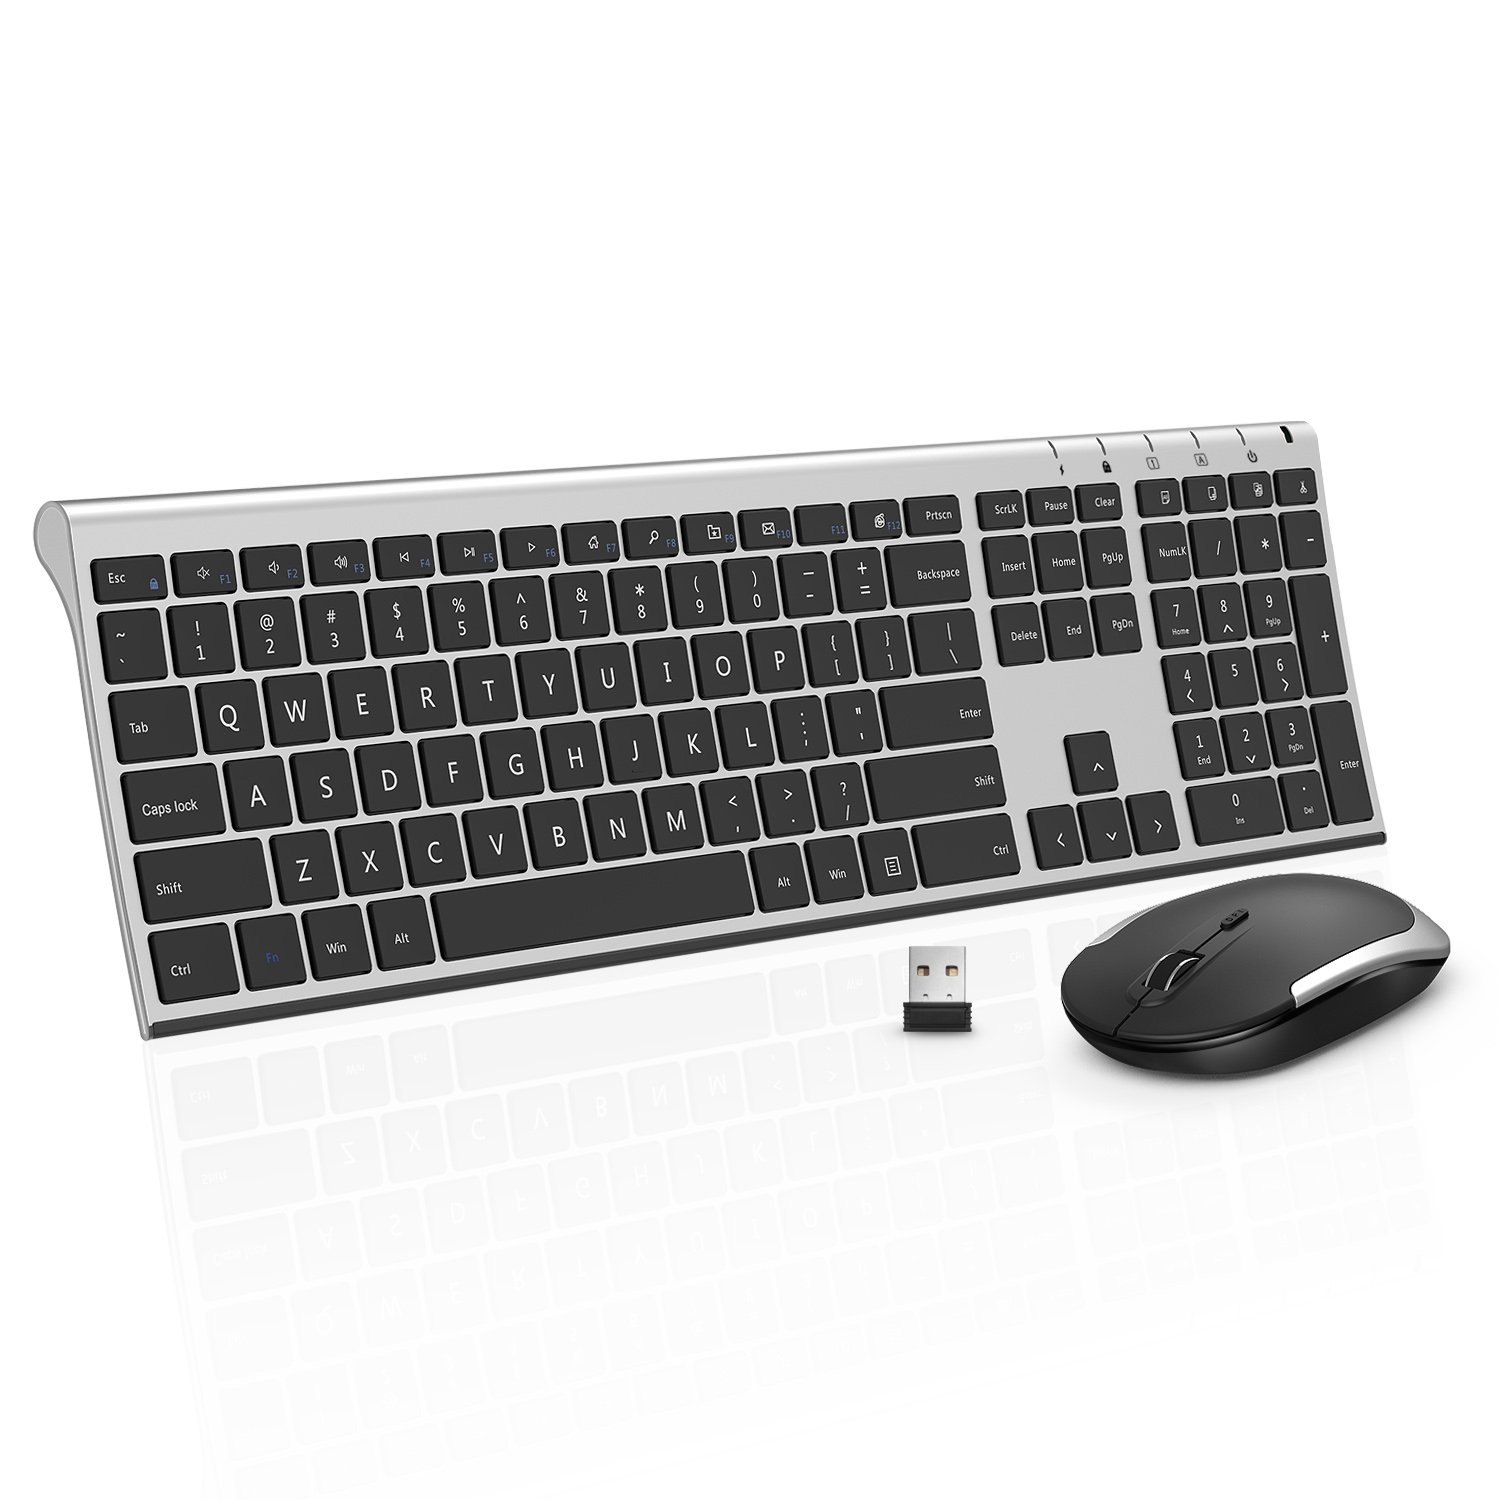 Wireless Keyboard Mouse, Jelly Comb 2.4GHz Ultra Slim Full Size Rechargeable Wireless Keyboard and Mouse Combo for Windows, Laptop, Notebook, PC, Desktop, Computer (Black and Silver)